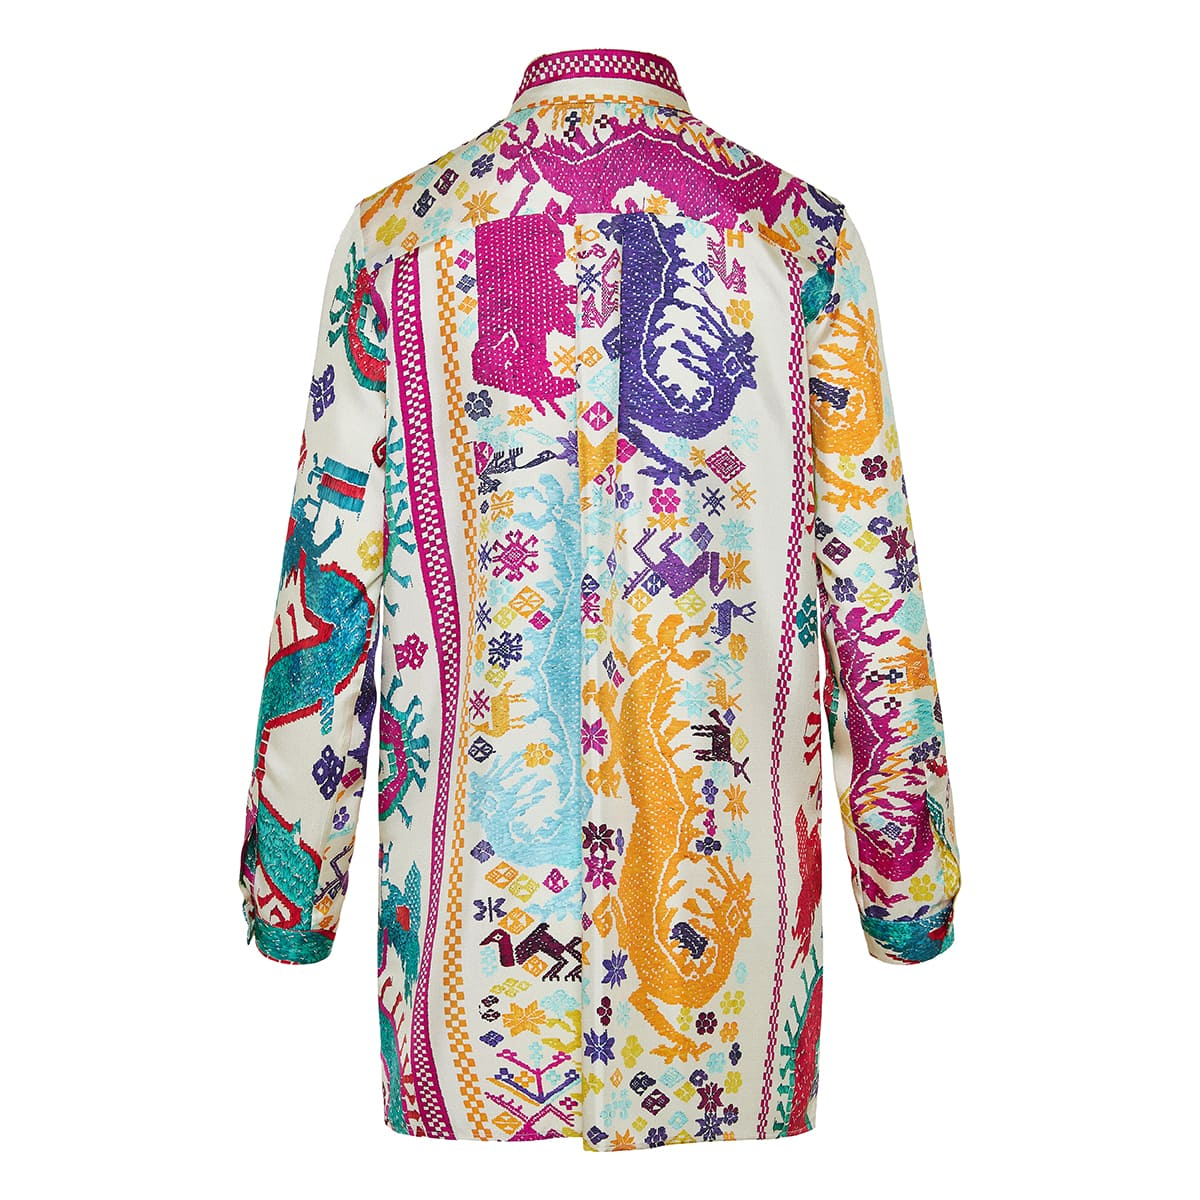 Embroidery-effect long printed shirt